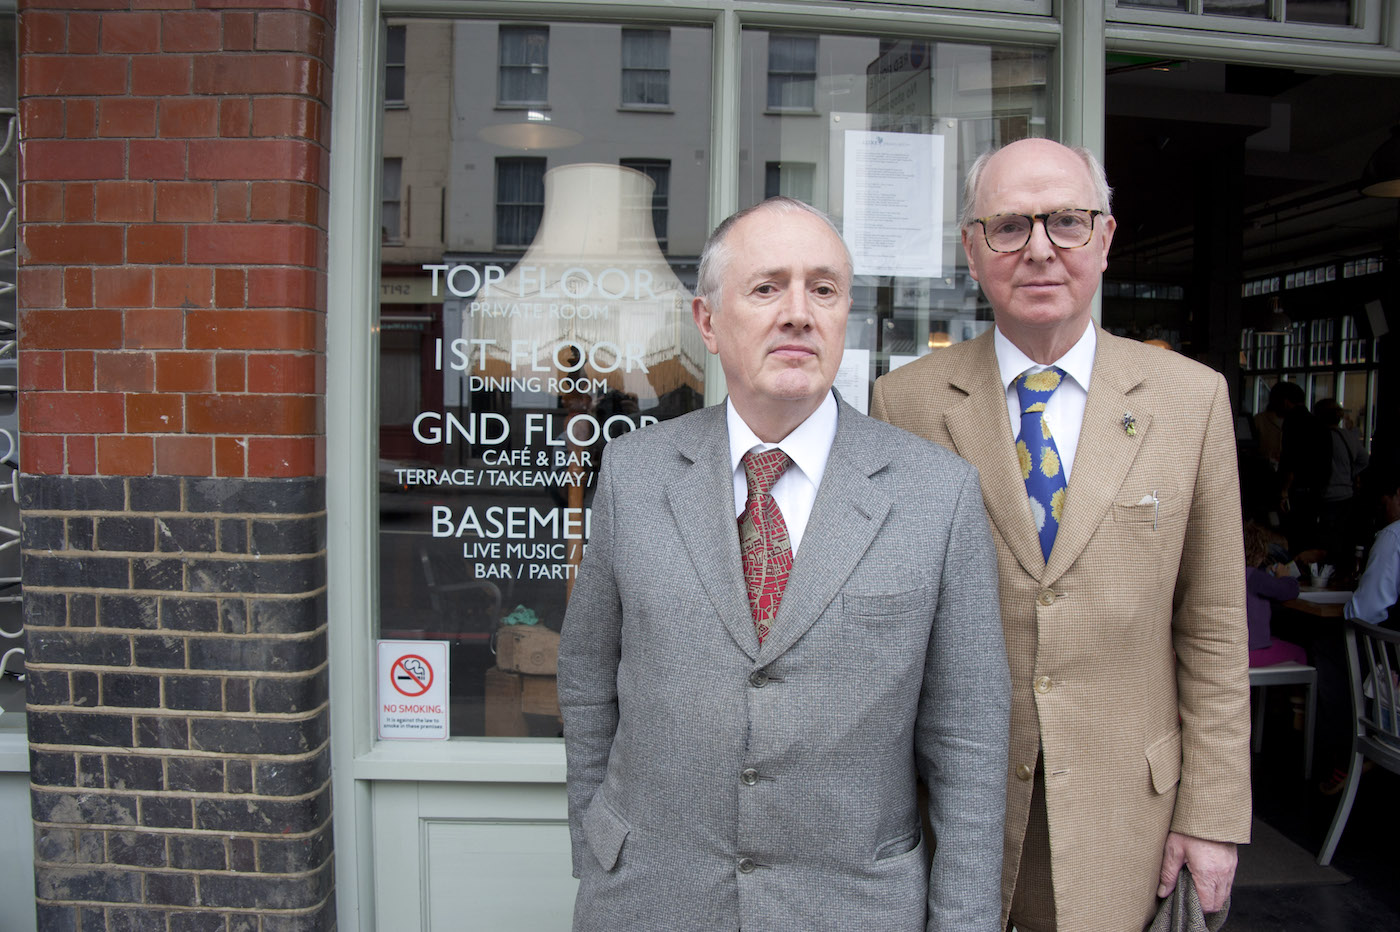 Artists Gilbert & George will open a contemporary art center in east London. (photo by Bryan Ledgard/Flickr)